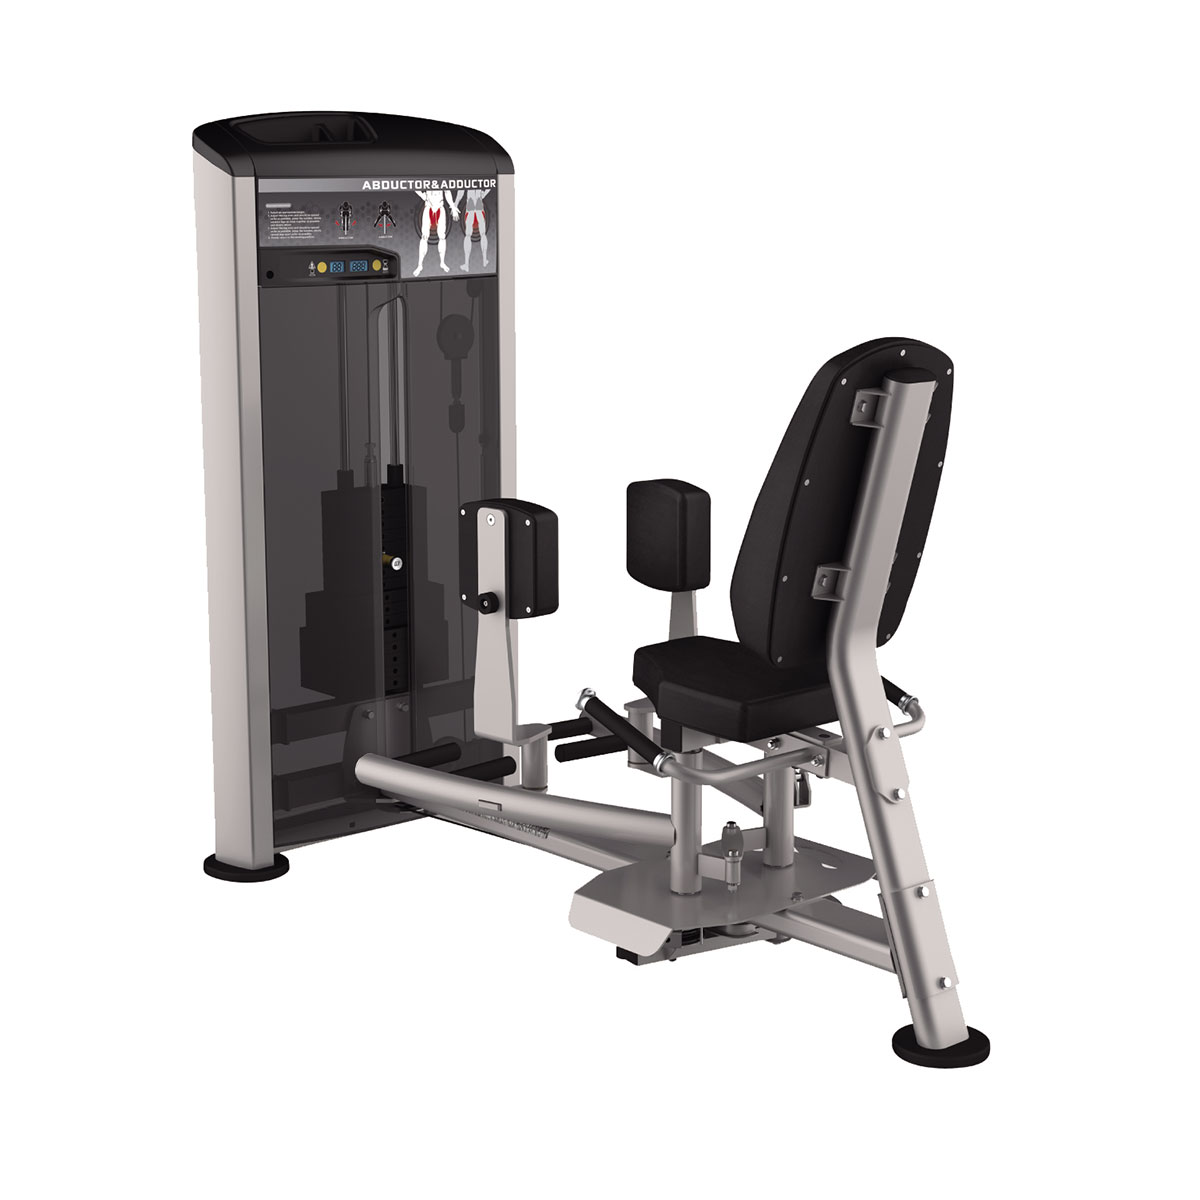 Abductor / Adductor - 150 lbs